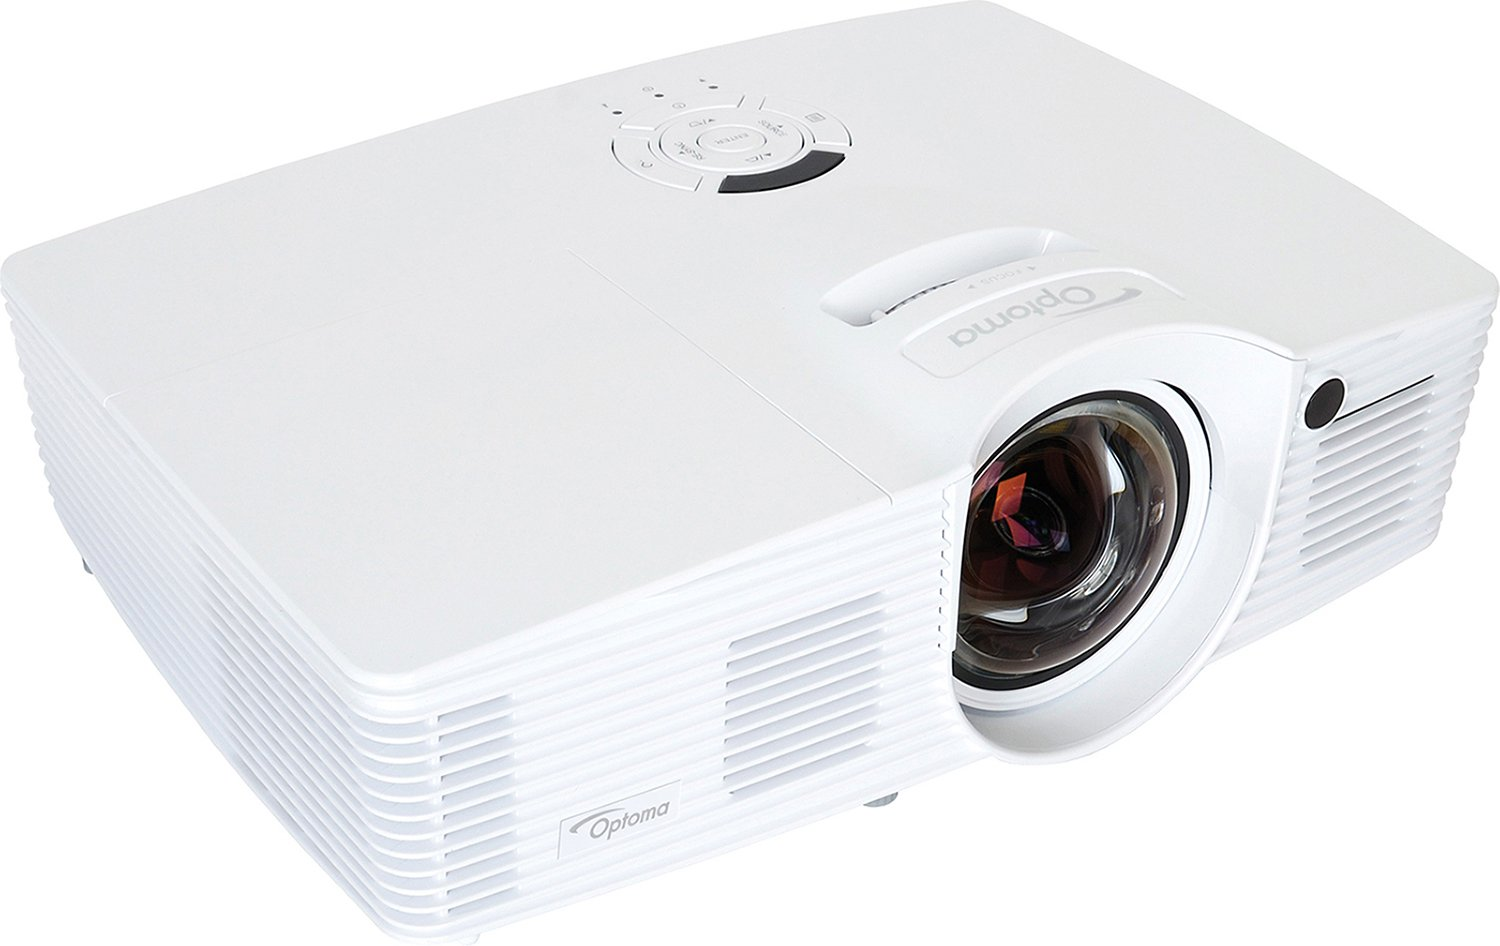 3000 Lumen 1080p Short Throw Projector with Darbee Processing